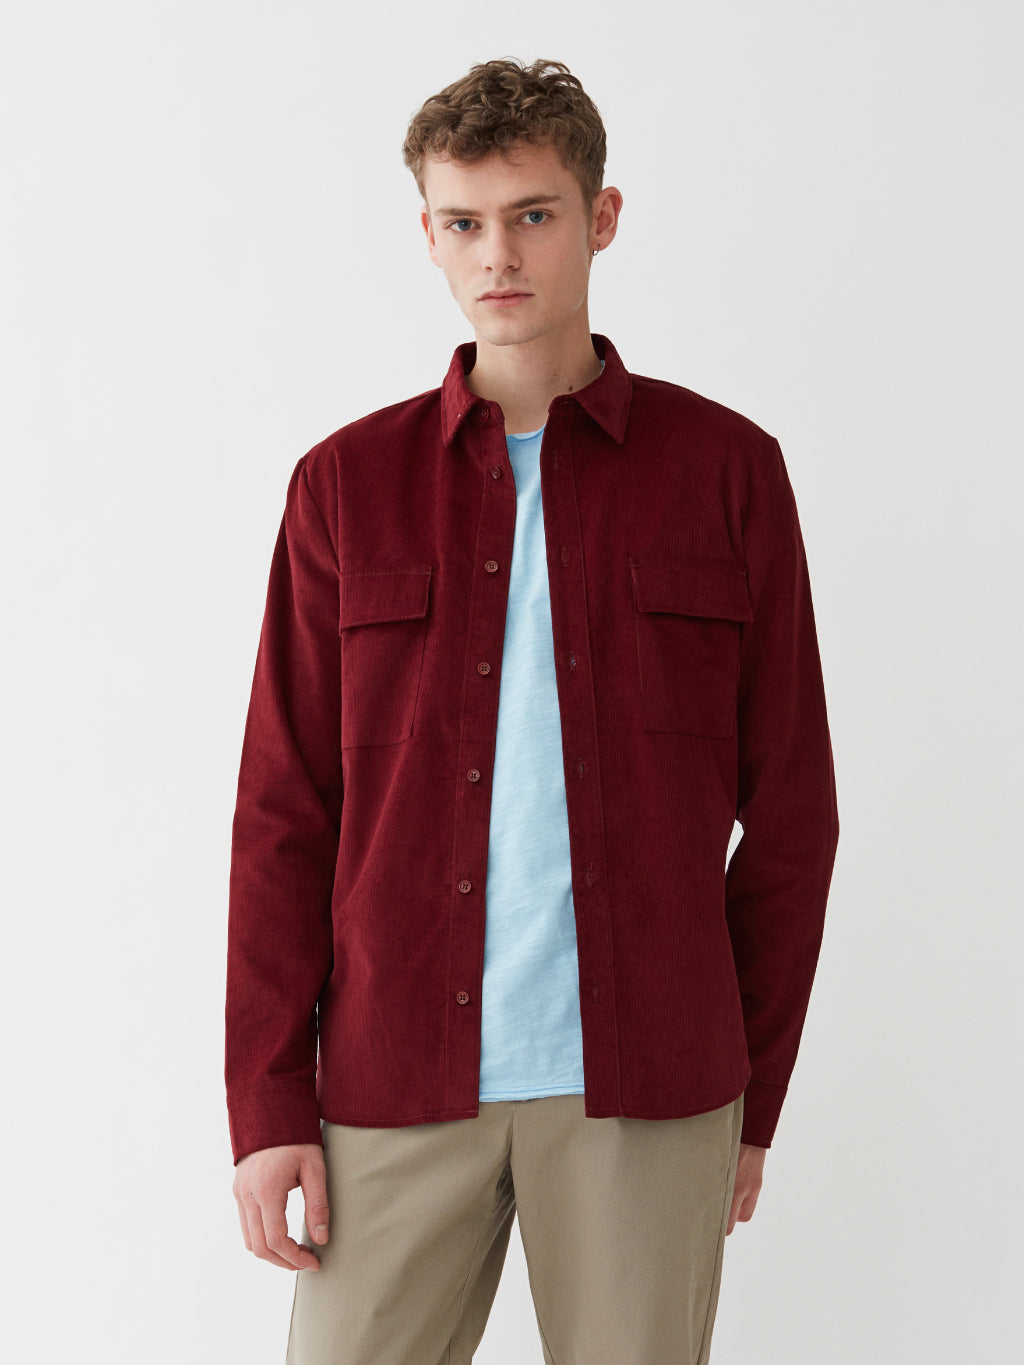 Amalfi Cord Shirt | Red Wine